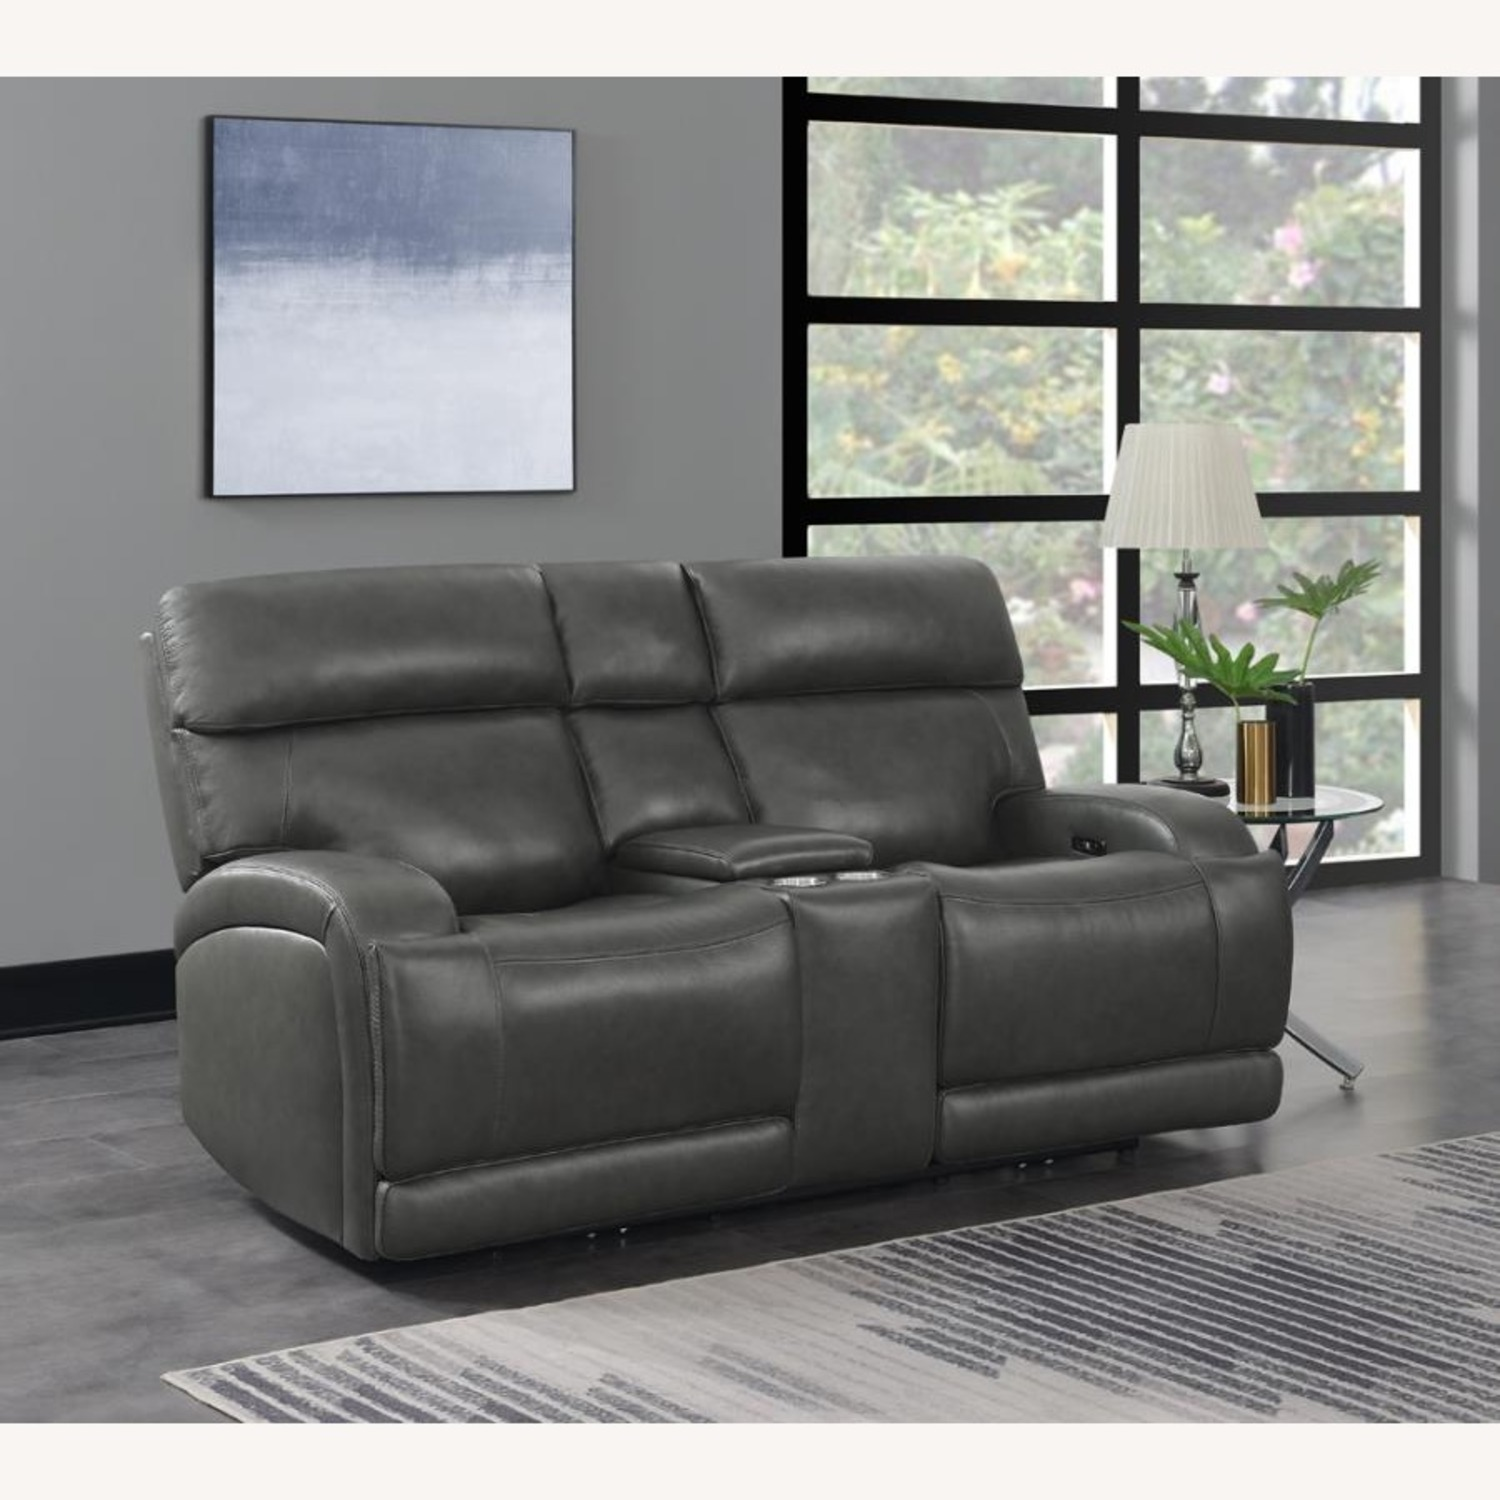 Power Loveseat W/ Console In Charcoal Leatherette - image-9